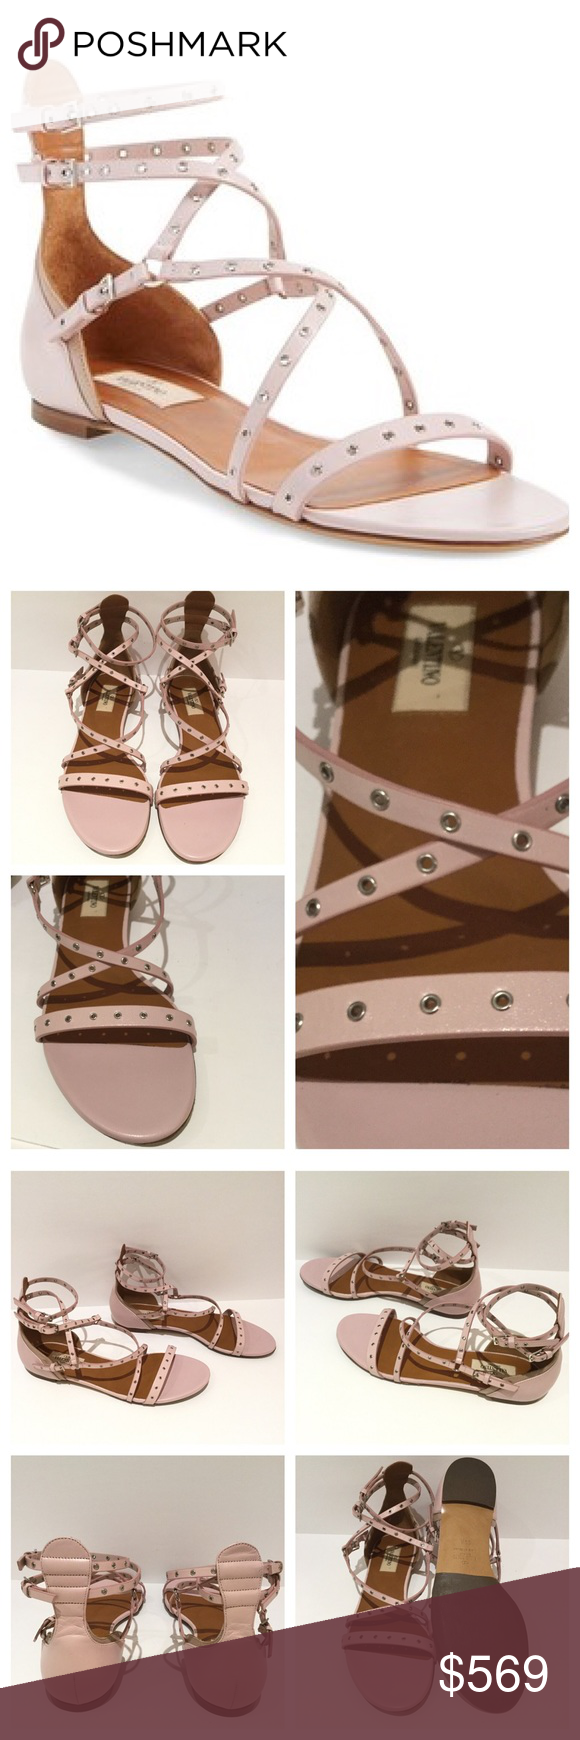 VALENTINO LOVE 'LATGH' STRAPPY GROMMET SANDALS. New Without Tags Polished grommets and sleek buckles add a bit of edge to strappy sandals done in a blush pink hue. A contrast inset along the heel counter beautifully plays up the style's curvy silhouette. Adjustable straps with buckle closures.  EU SIZE 38 1/2.  Bottom Soles / Heel Have Been Partially Refinished to Prevent Store Return. Leather upper and lining.  Made in Italy.       Notes: Valentino shoes run 1/2 smaller…